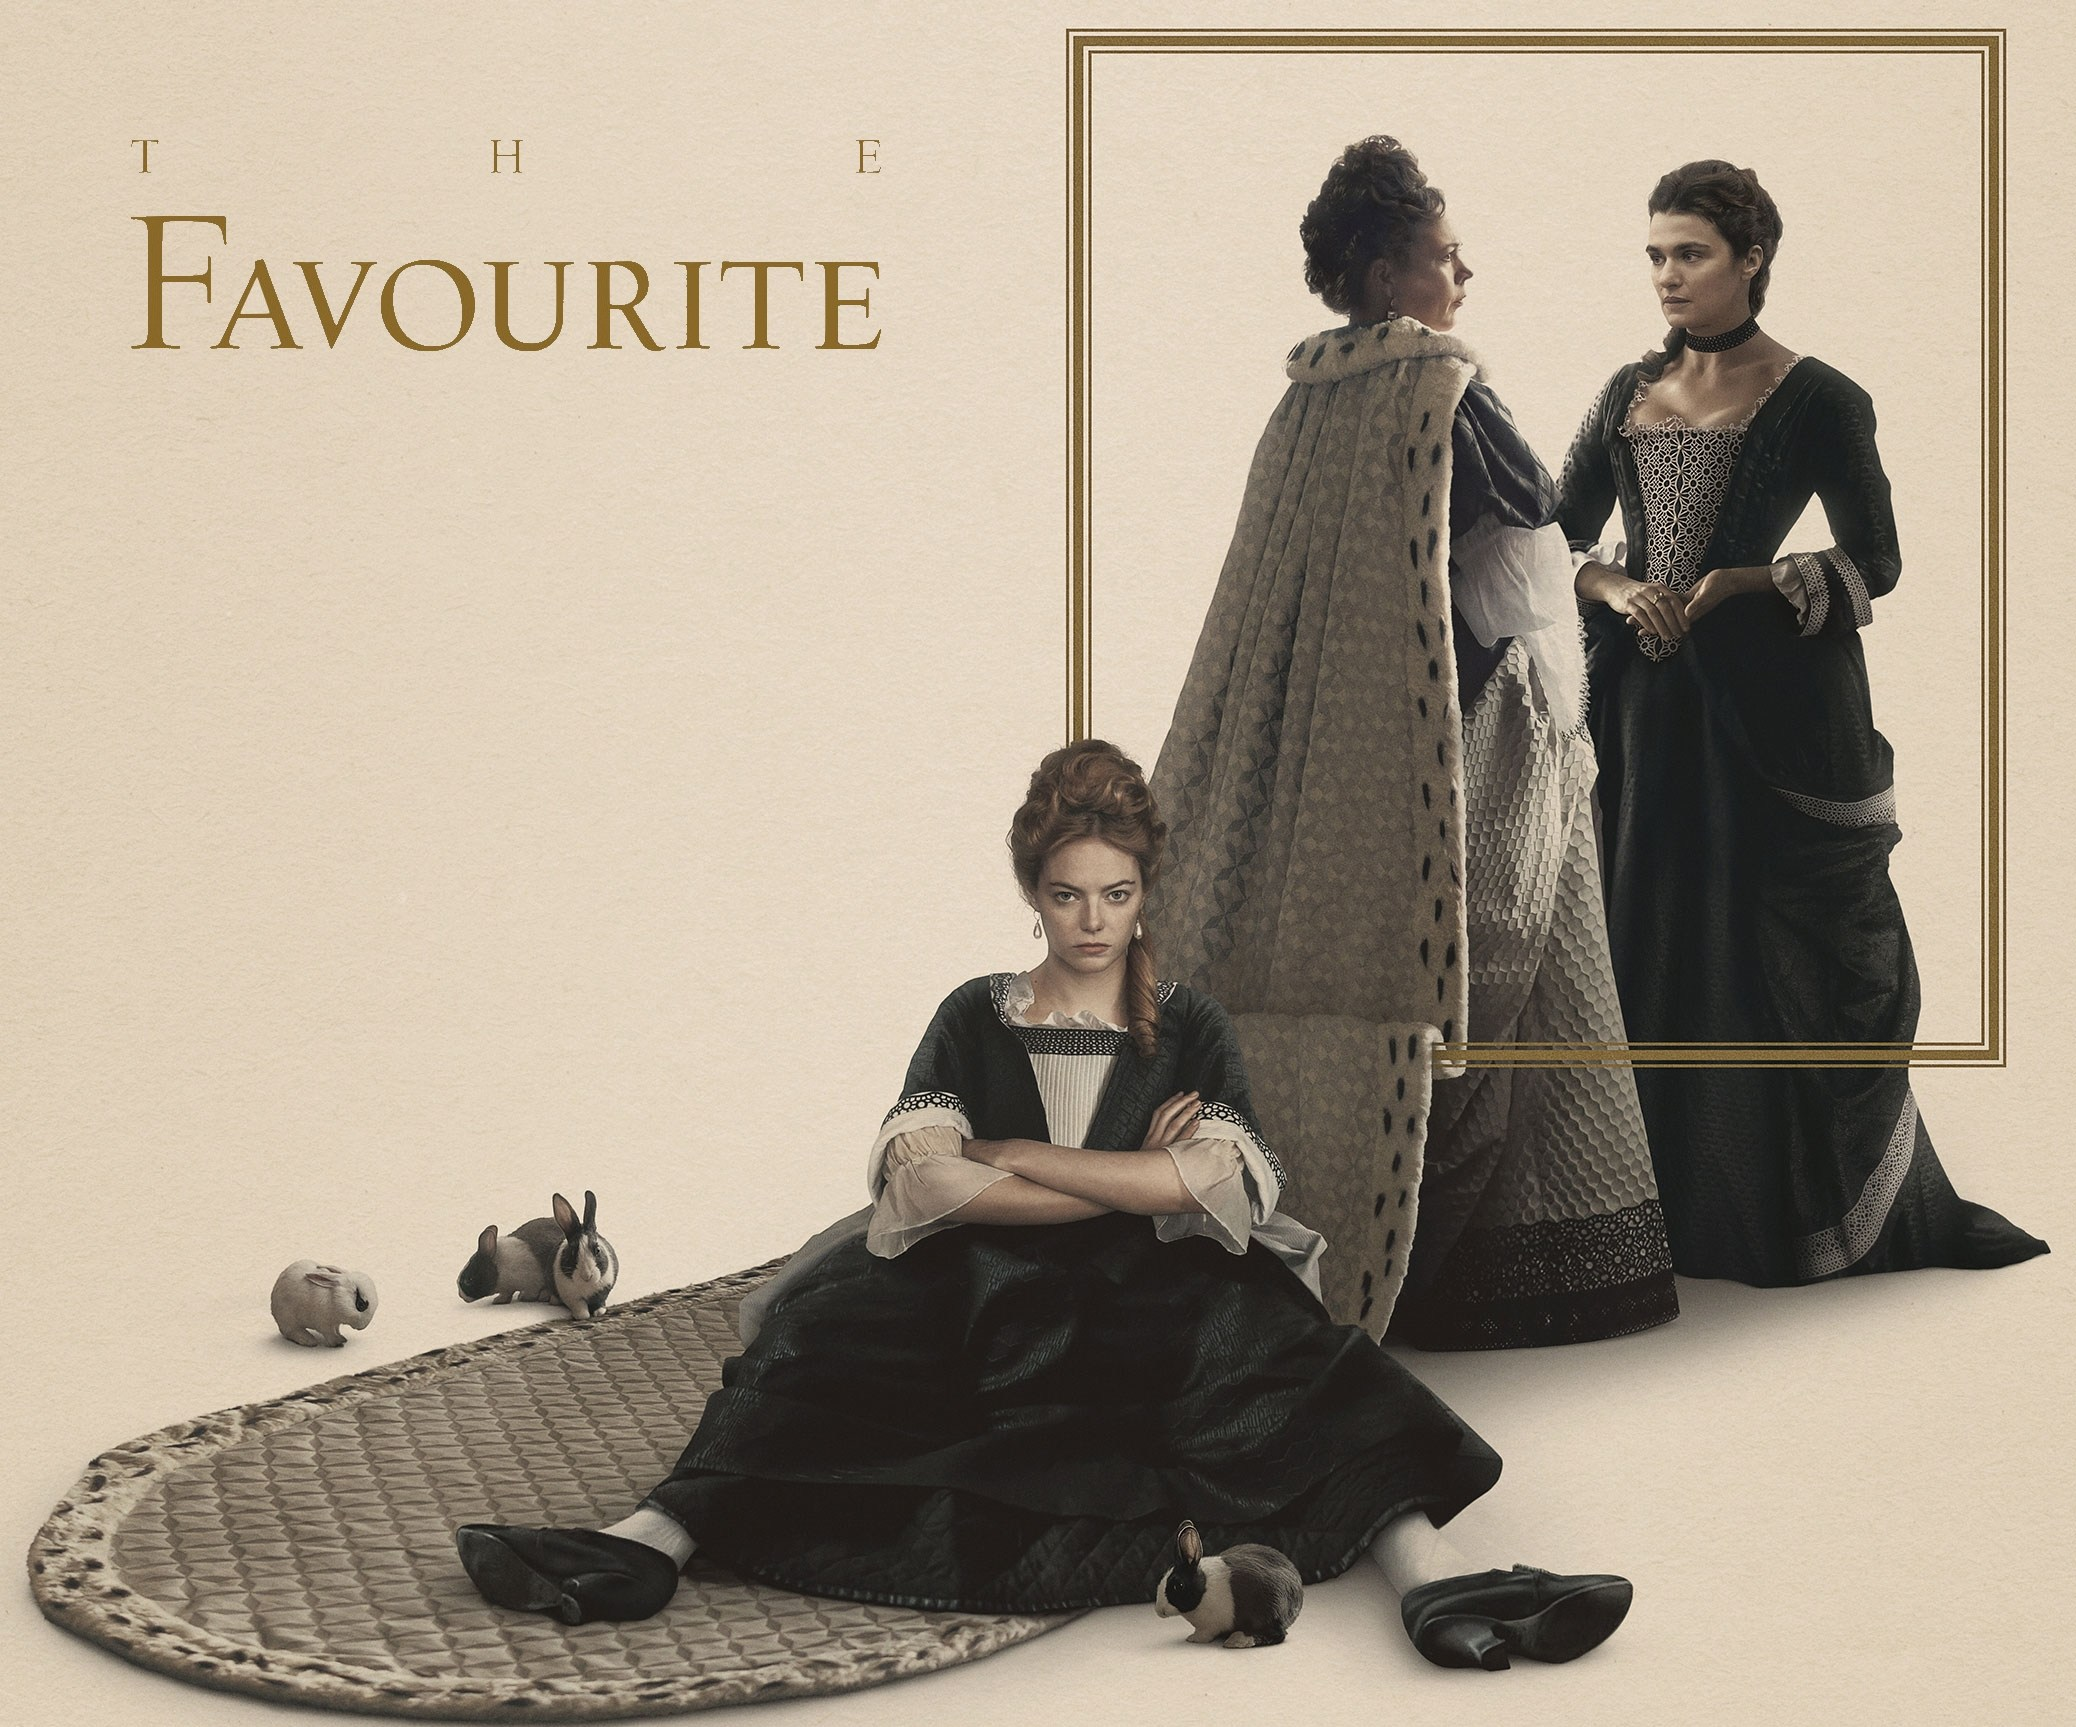 The-Favourite-movie-2018-1.jpg